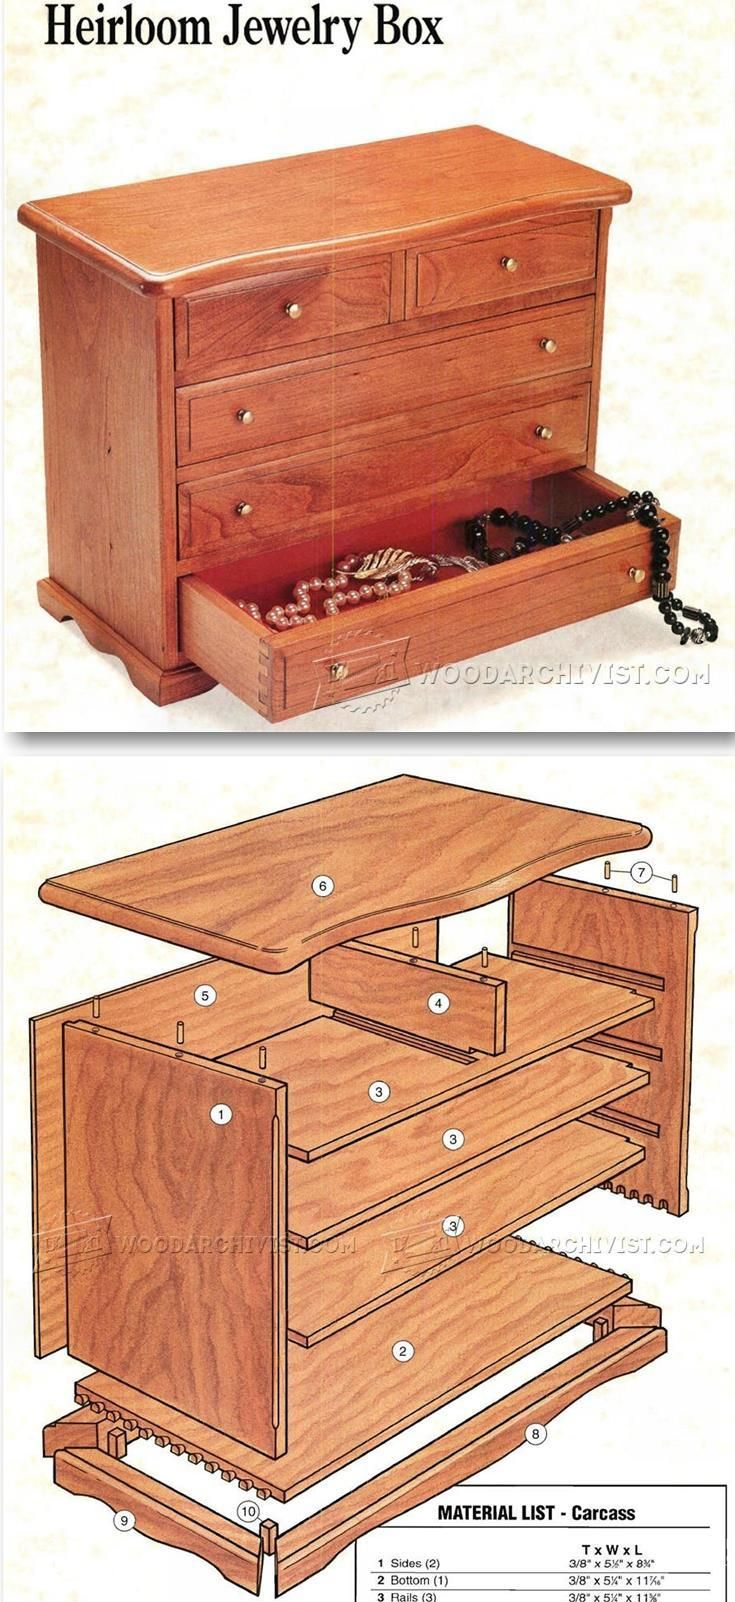 27 Beautiful Woodworking Plans Jewelry Box egorlincom